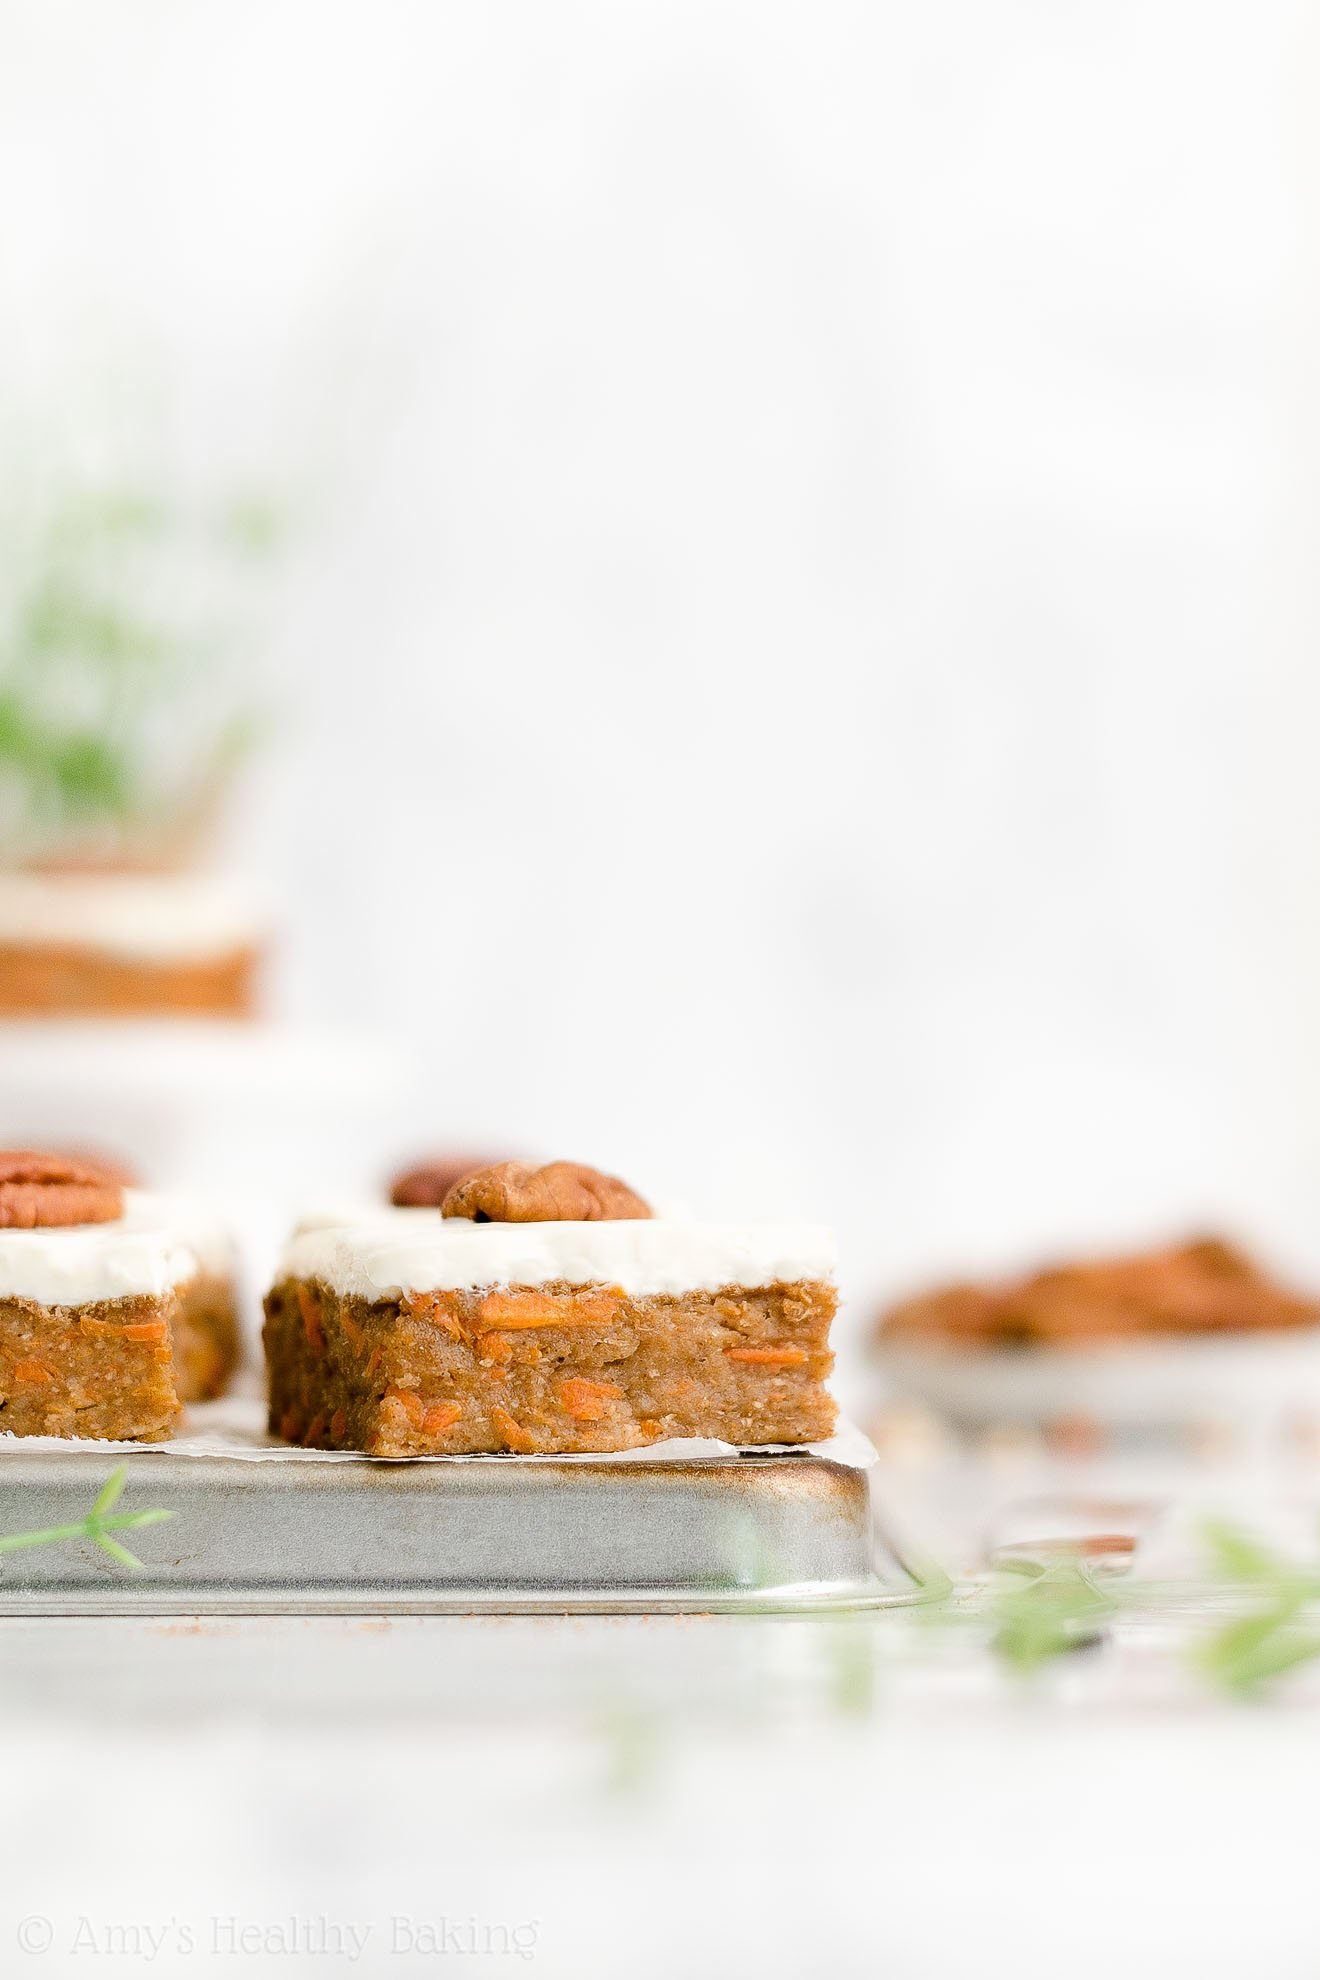 Easy Healthy Low Fat Carrot Cake Bars with Greek Yogurt Cream Cheese Frosting